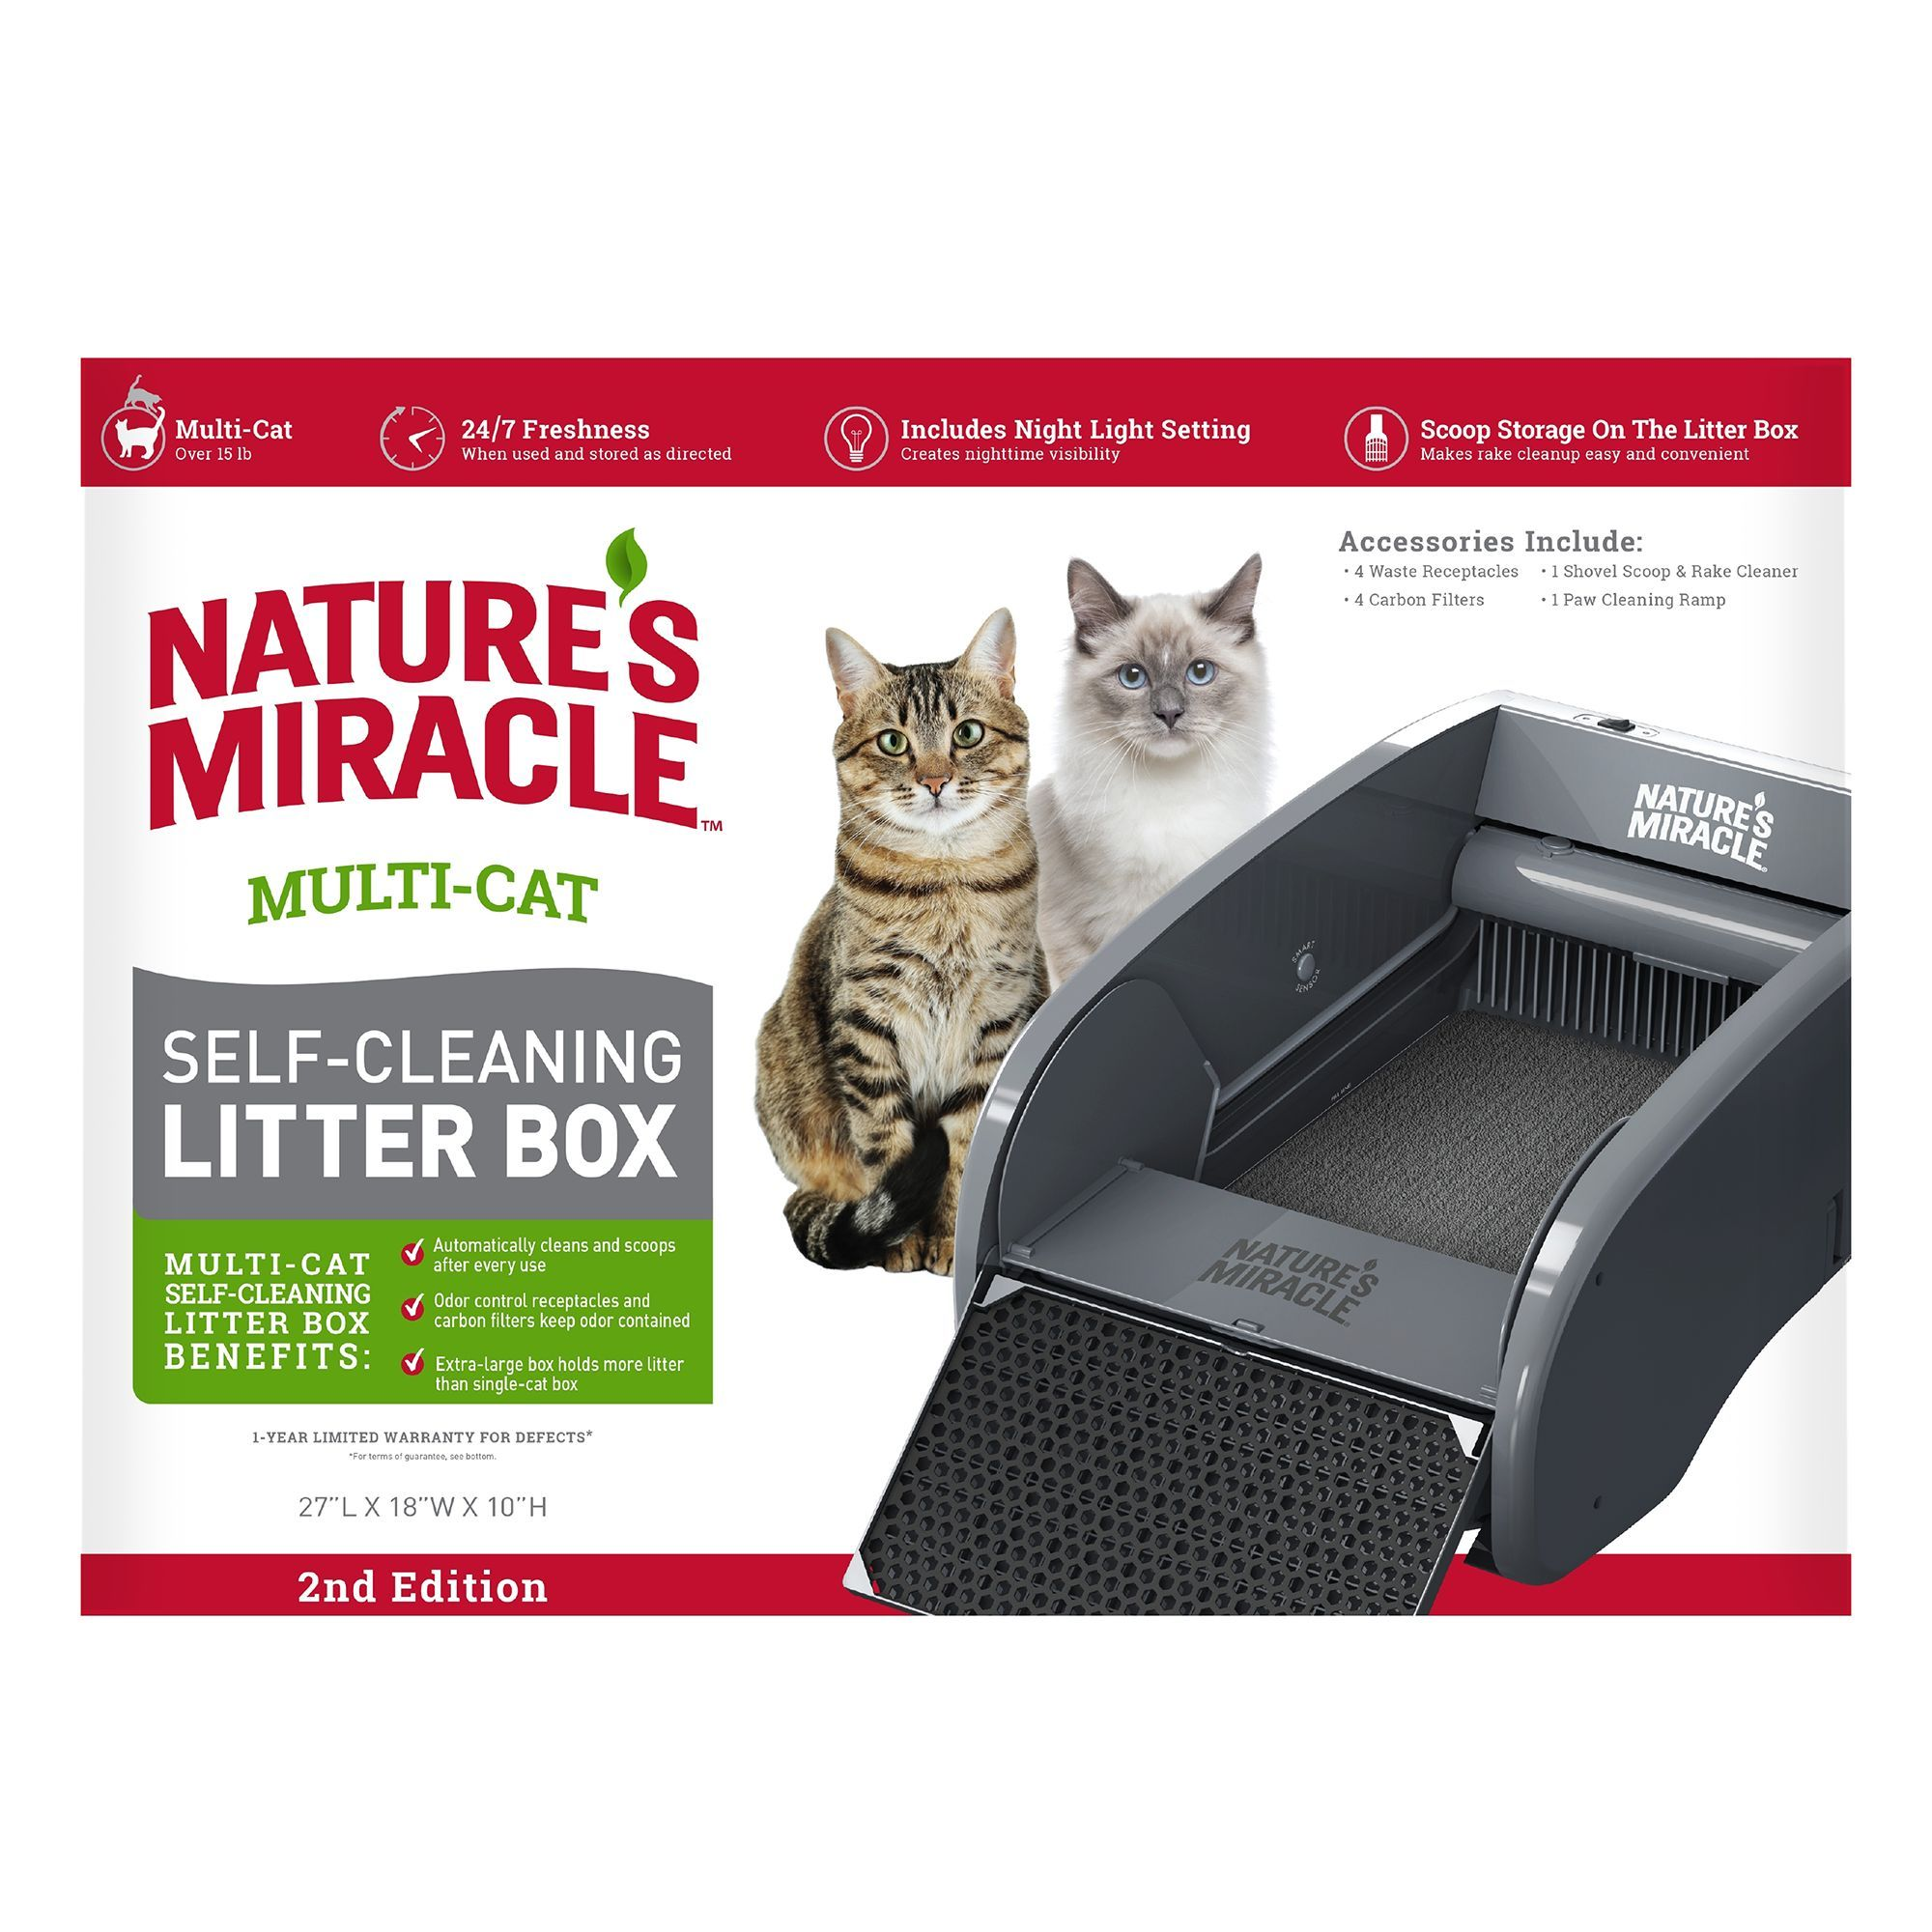 Nature's Miracle® MultiCat SelfCleaning Litter Box